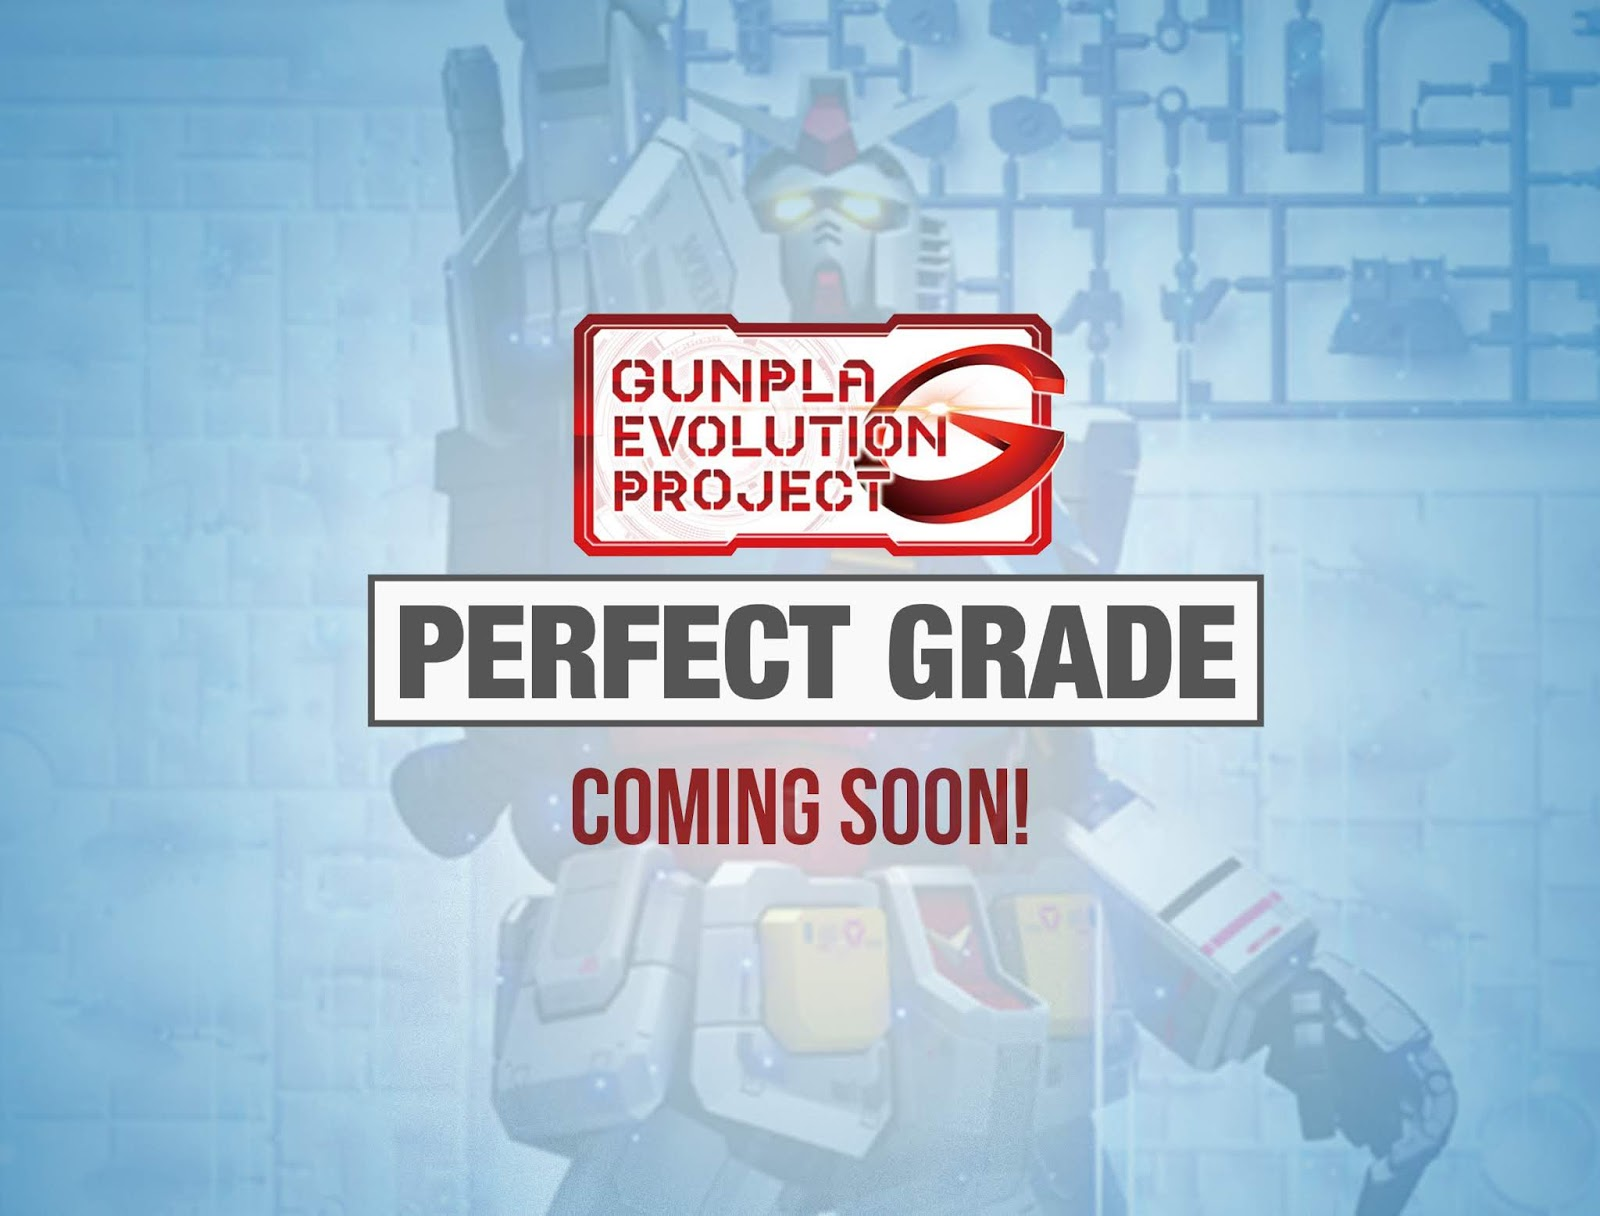 A new PERFECT GRADE soon